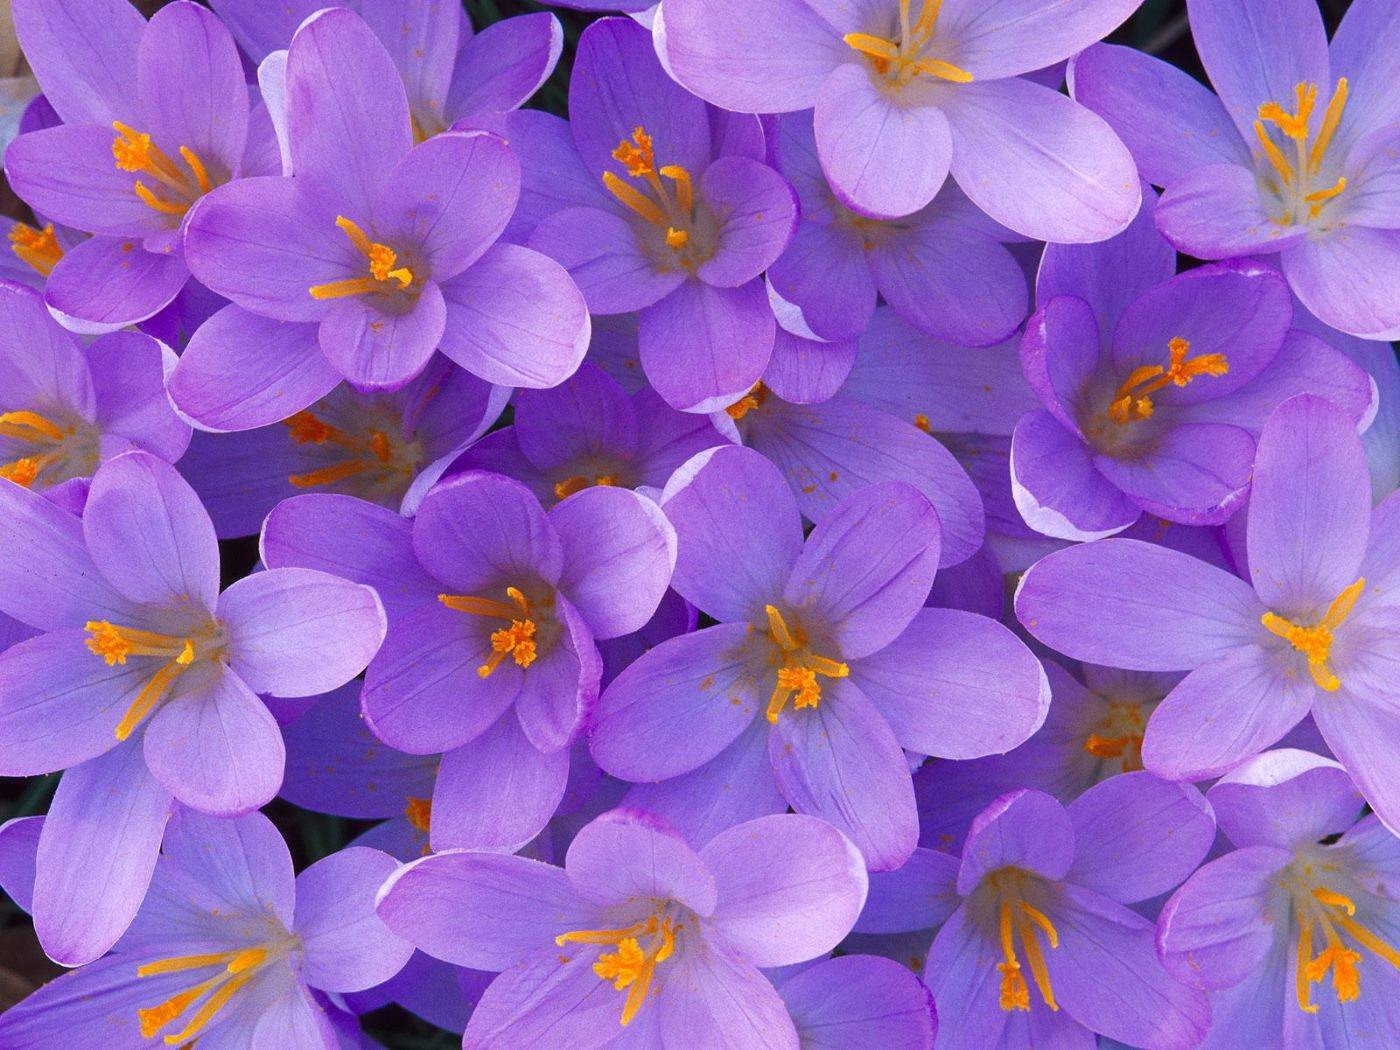 Purple flowers wallpapers high quality download free purple flowers desktop wallpaper hq mightylinksfo